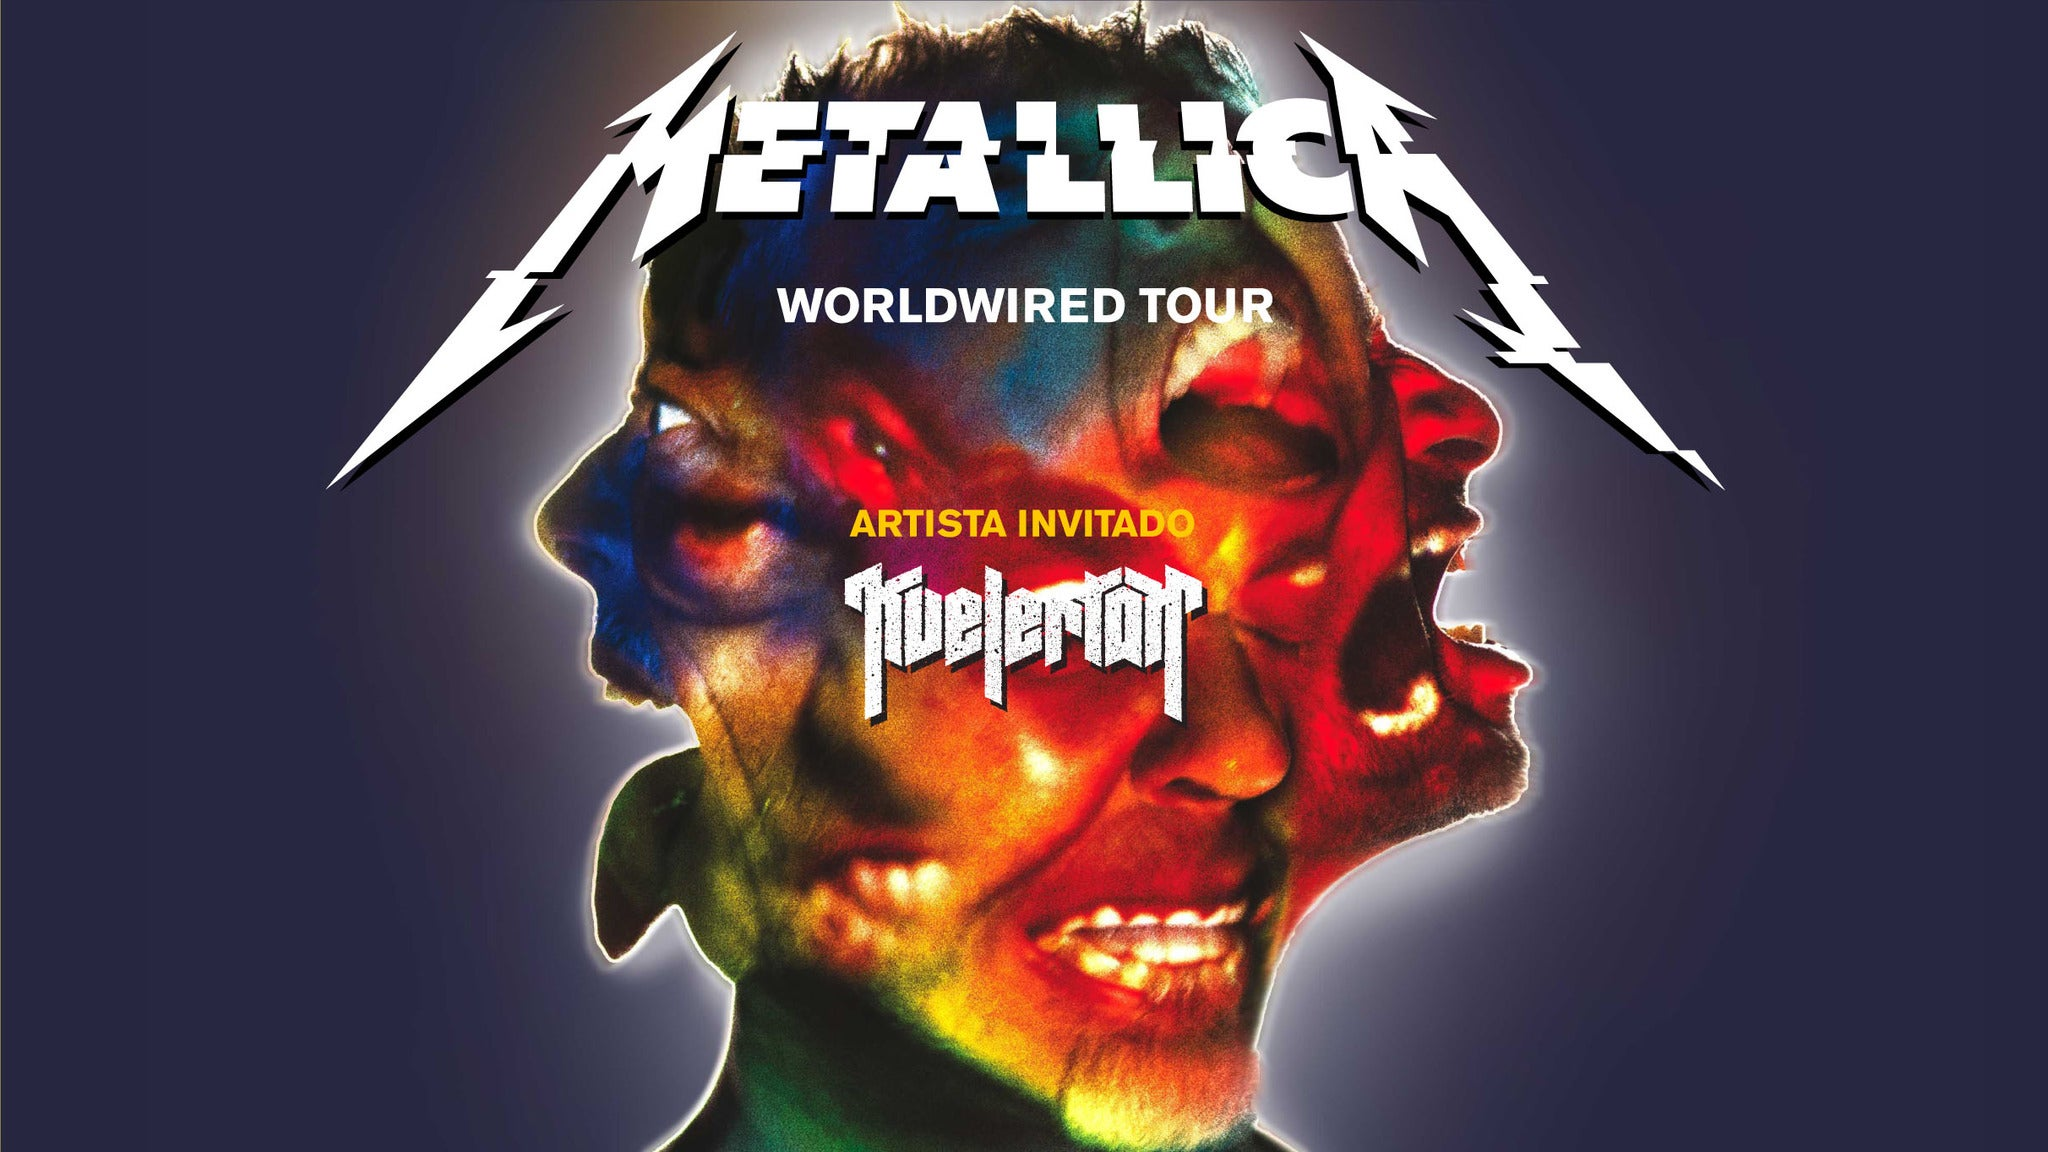 Metallica - WorldWired Tour at Verizon Arena